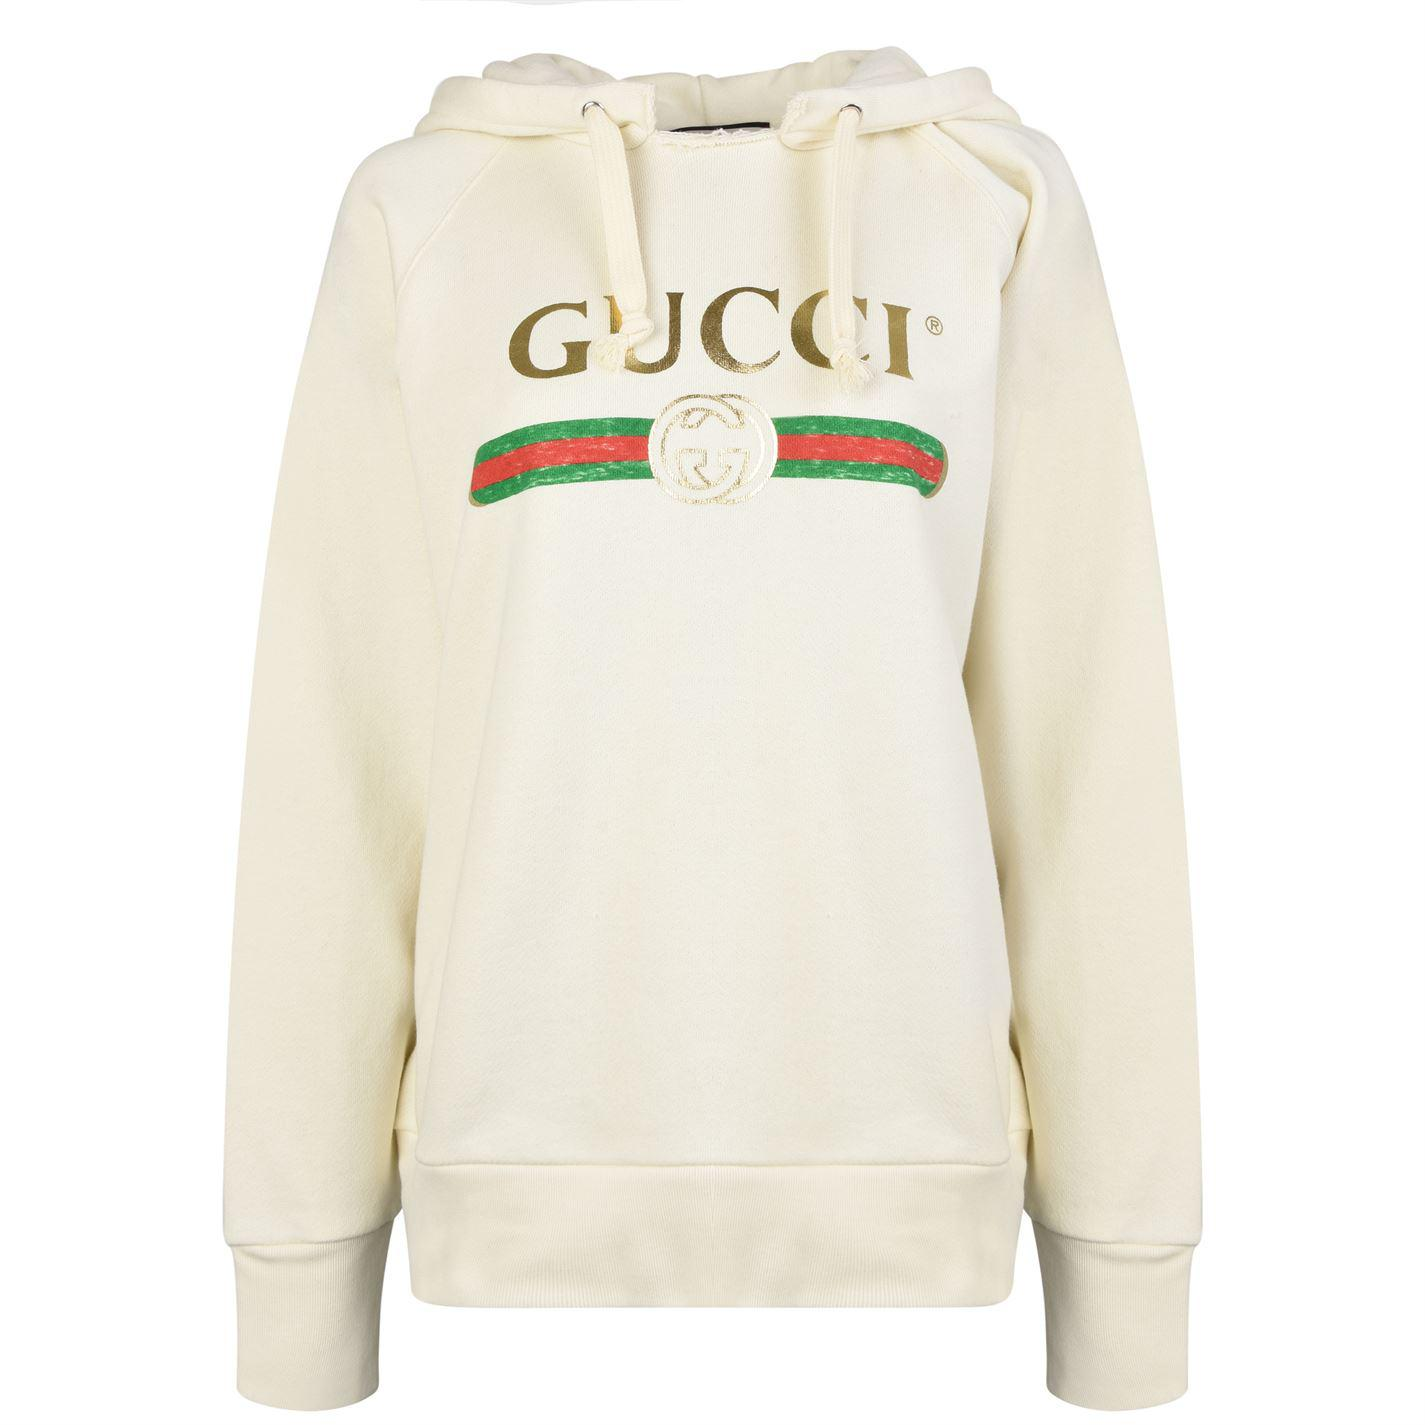 9c3357013 Gucci Embroidered Fake Logo Hooded Sweatshirt in White - Lyst